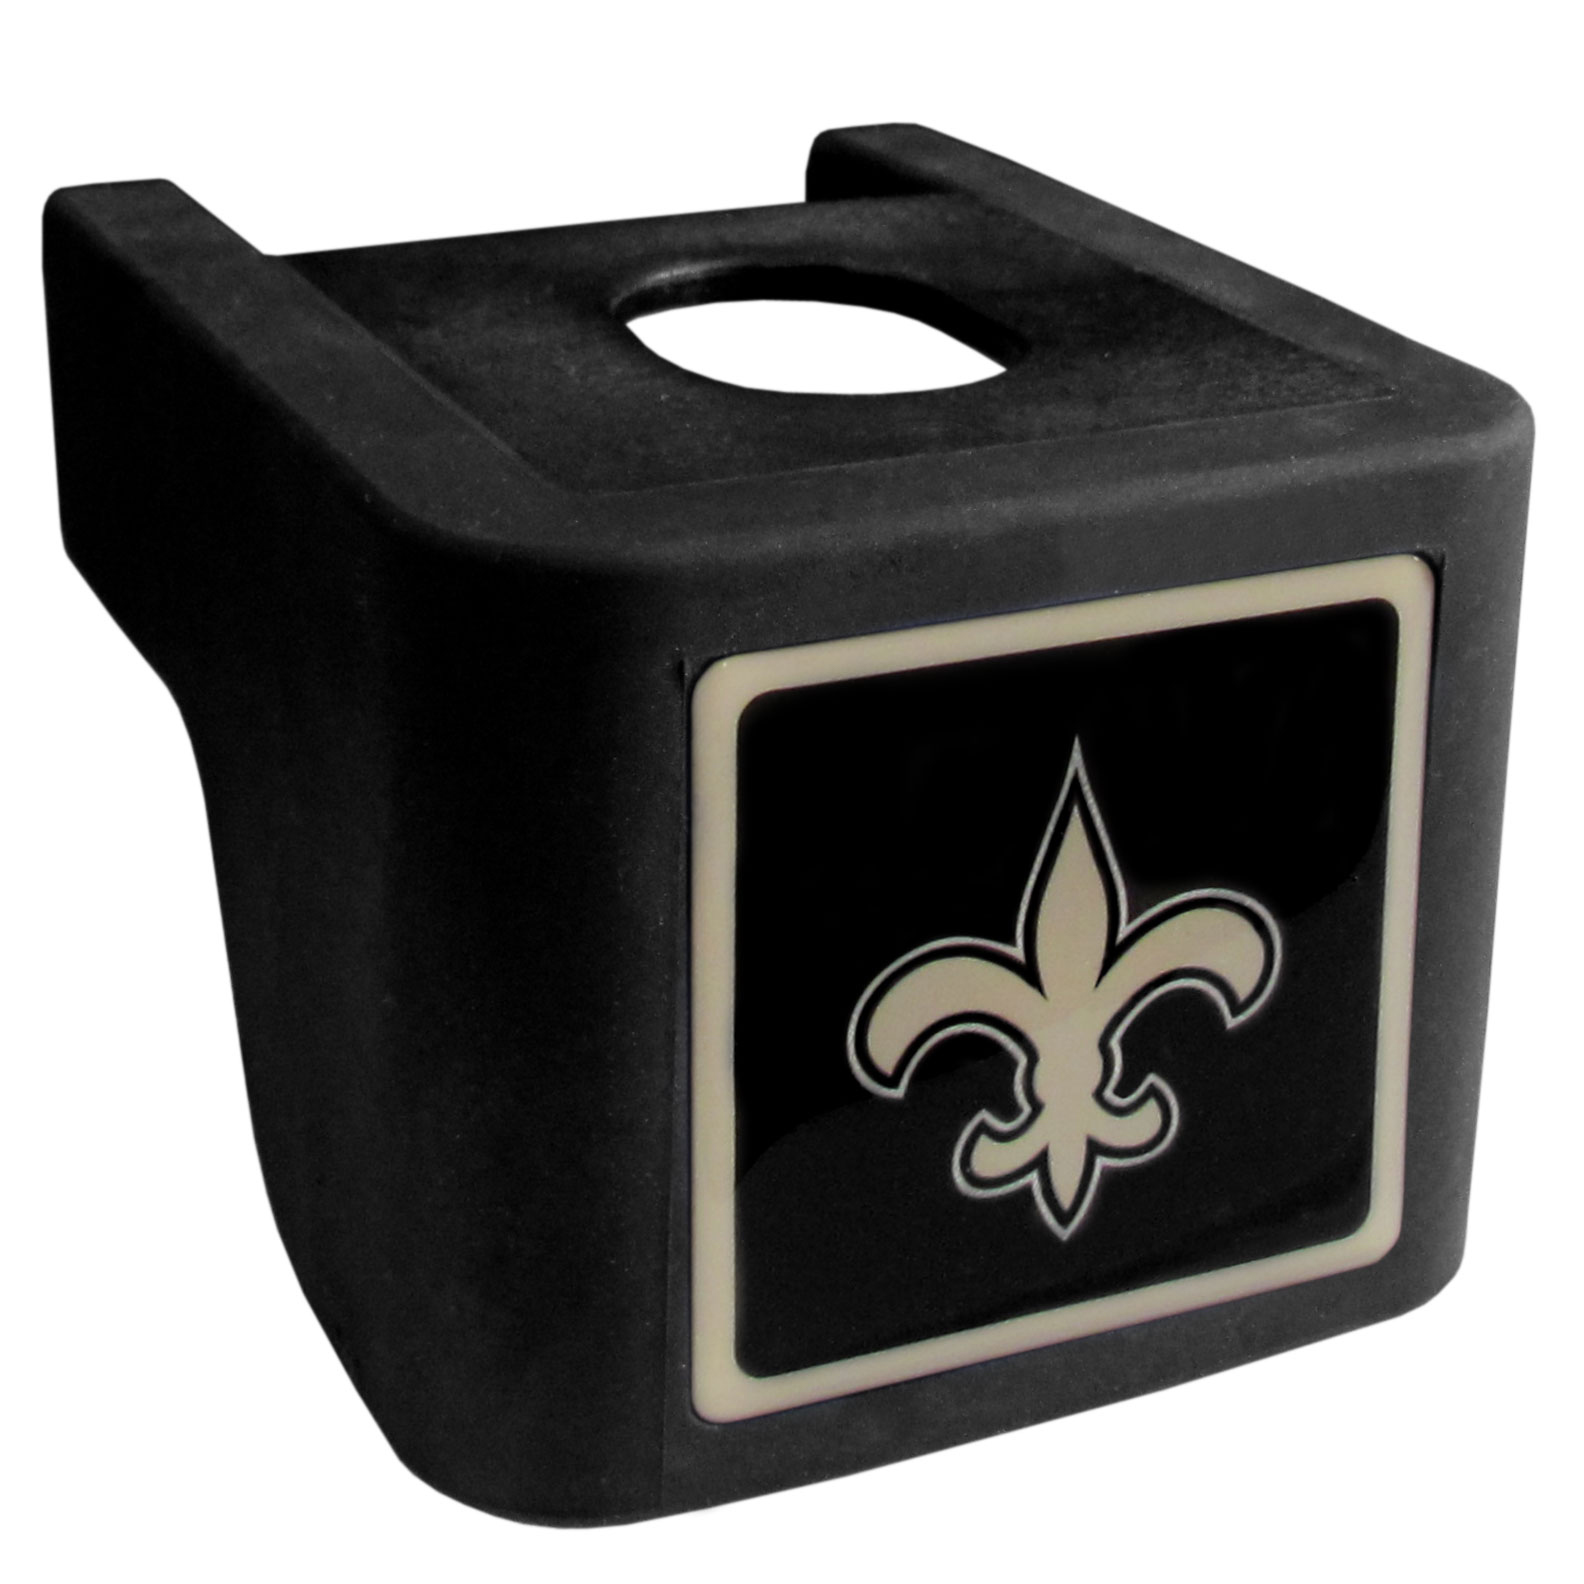 New Orleans Saints Shin Shield Hitch Cover - This unique hitch cover features a large New Orleans Saints logo. If you have ever hooked up a trailer or boat your have probably smashed your shins on the ball hitch a few times. This revolutionary shin shield hitch cover provides your much abused shins with the protection they deserve! The tough rubber hitch is rated to work with Class V hitch receivers hauling up to 17,000 gross trailer weight and 1,700 tongue weight allowing you to leave it on while hauling.